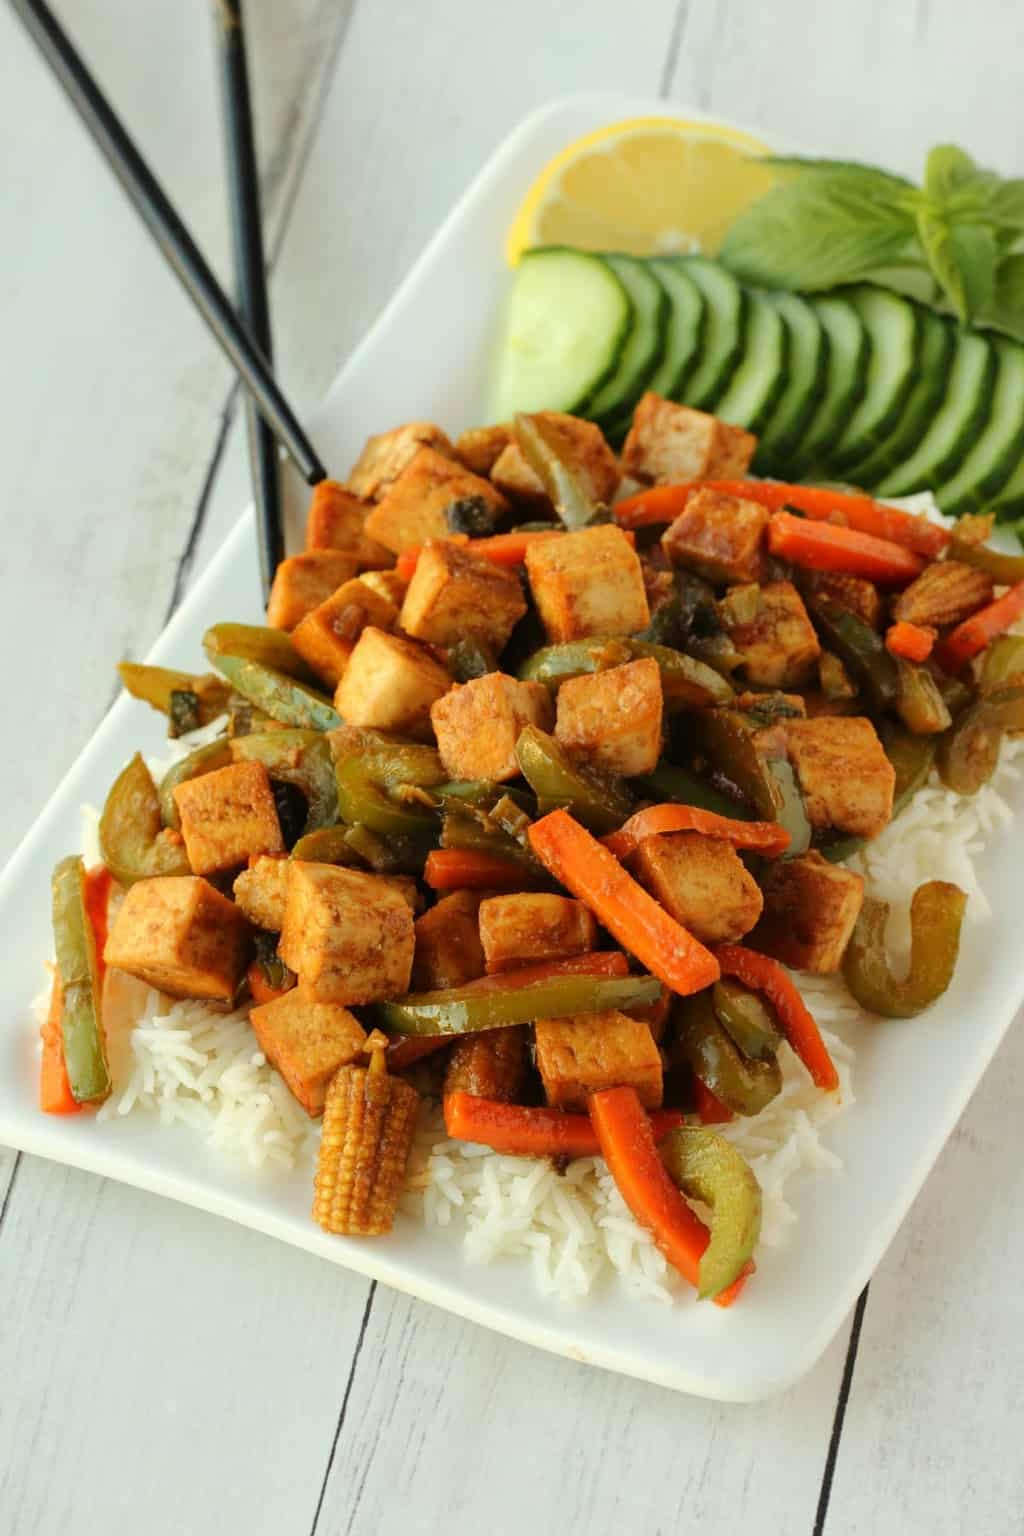 Vegan Tofu Stir Fry served over rice on a white plate.